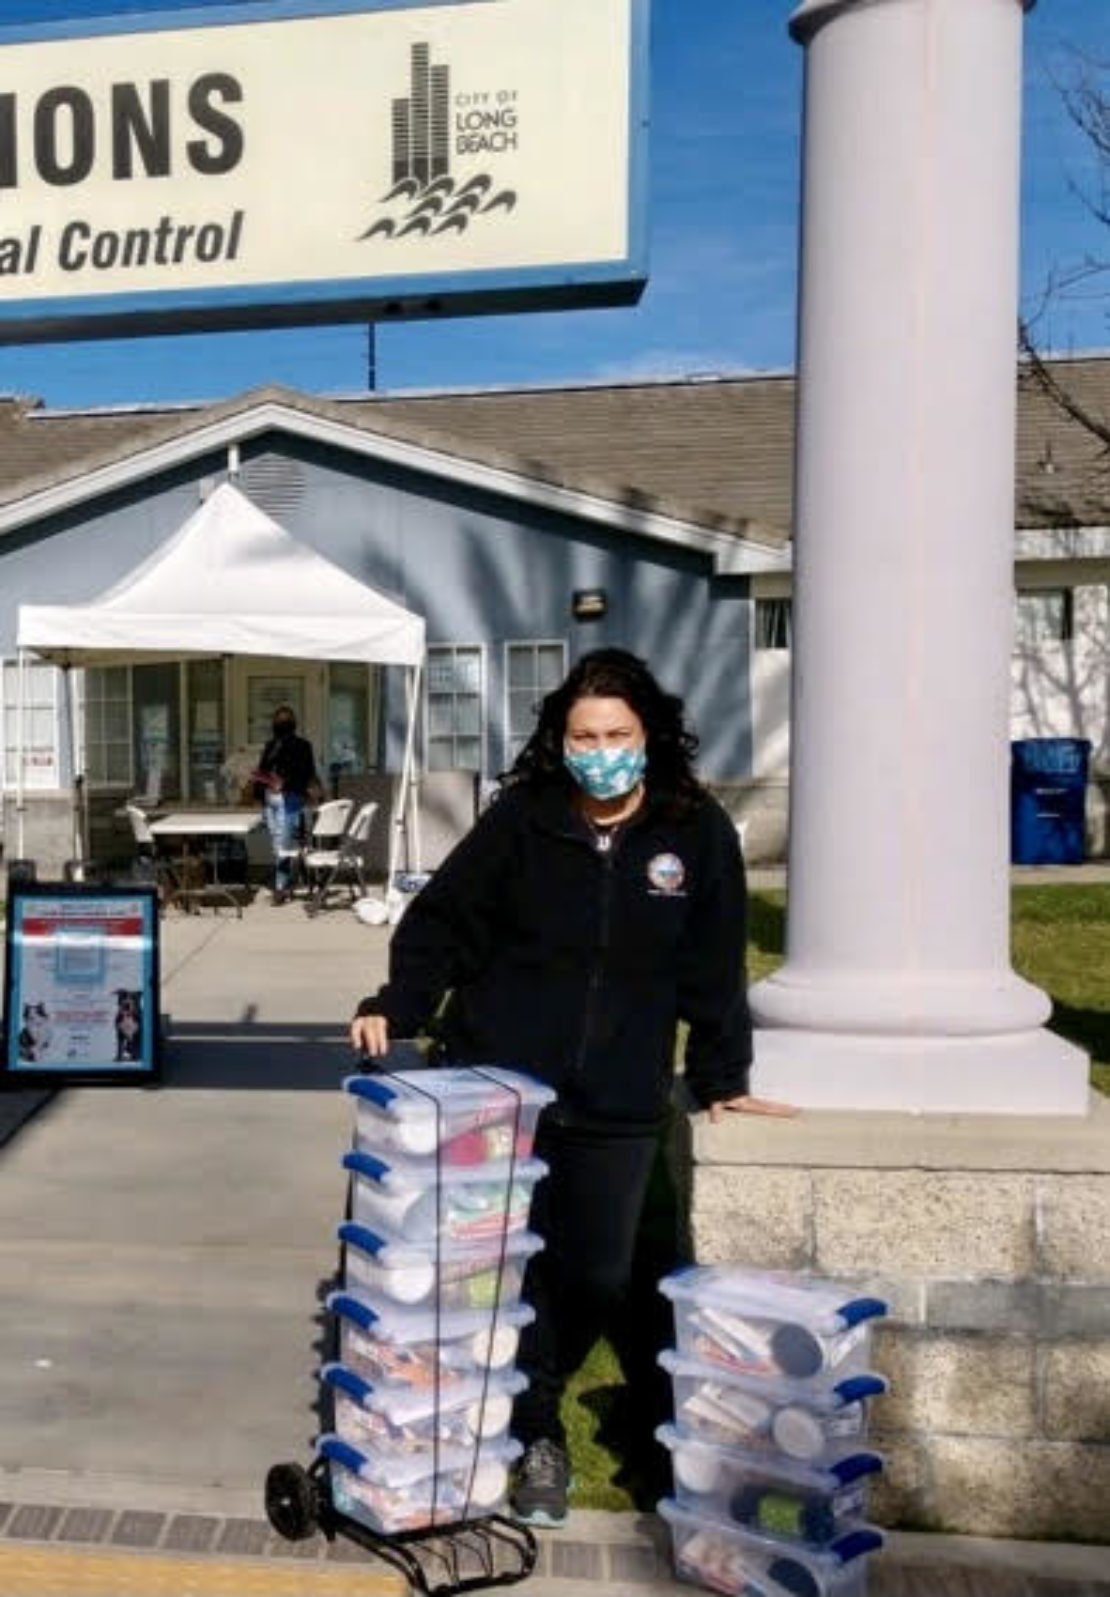 woman in face mask stands next to a pillar in front of a light-blue building next to a large pile of blue boxes.